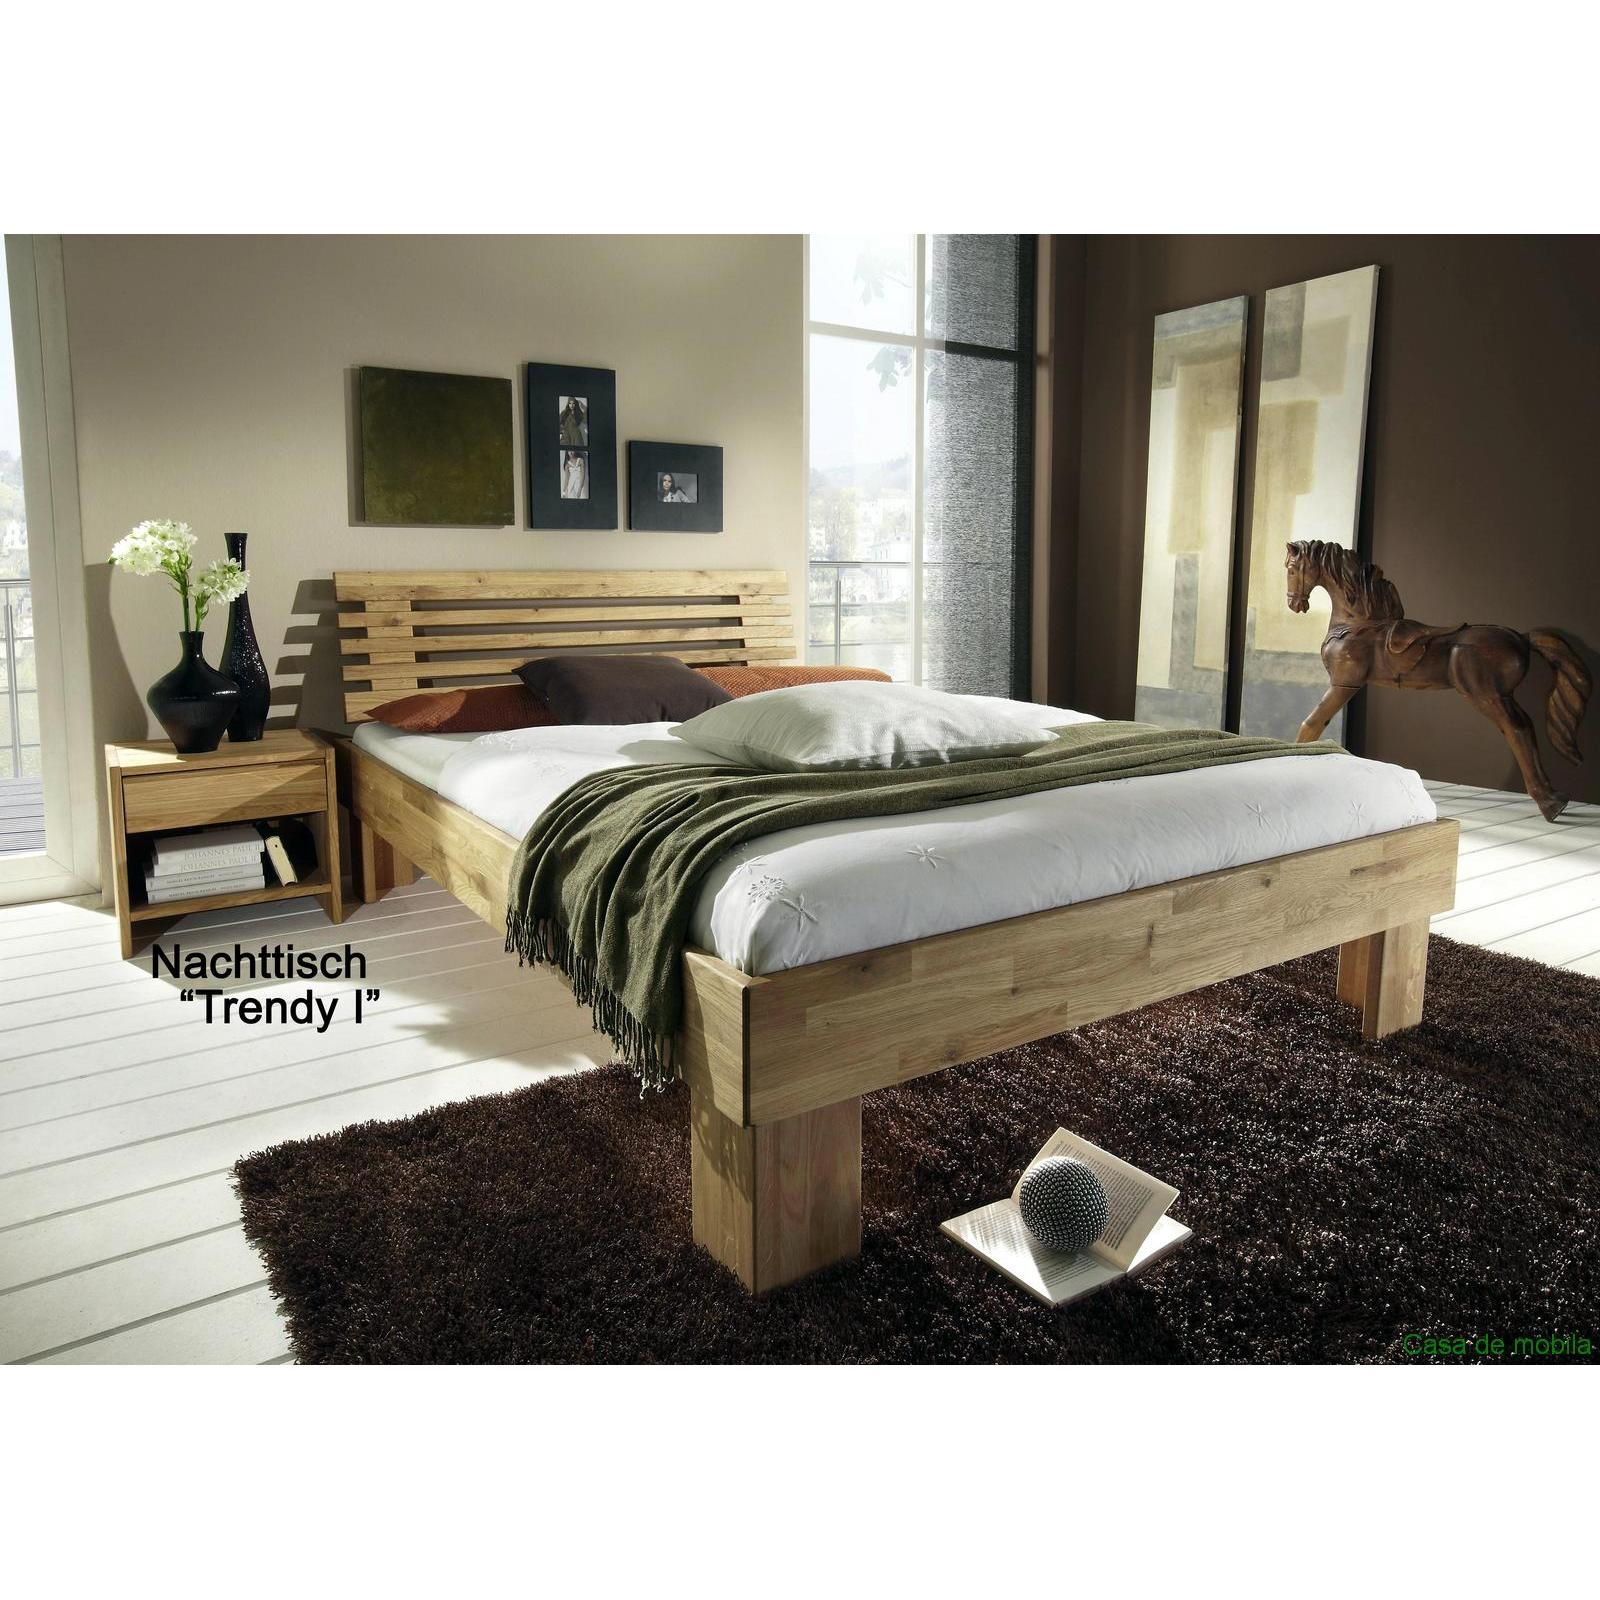 vollholz doppelbett eiche massiv holzbett gamma 200x200 wildeiche ge lt. Black Bedroom Furniture Sets. Home Design Ideas